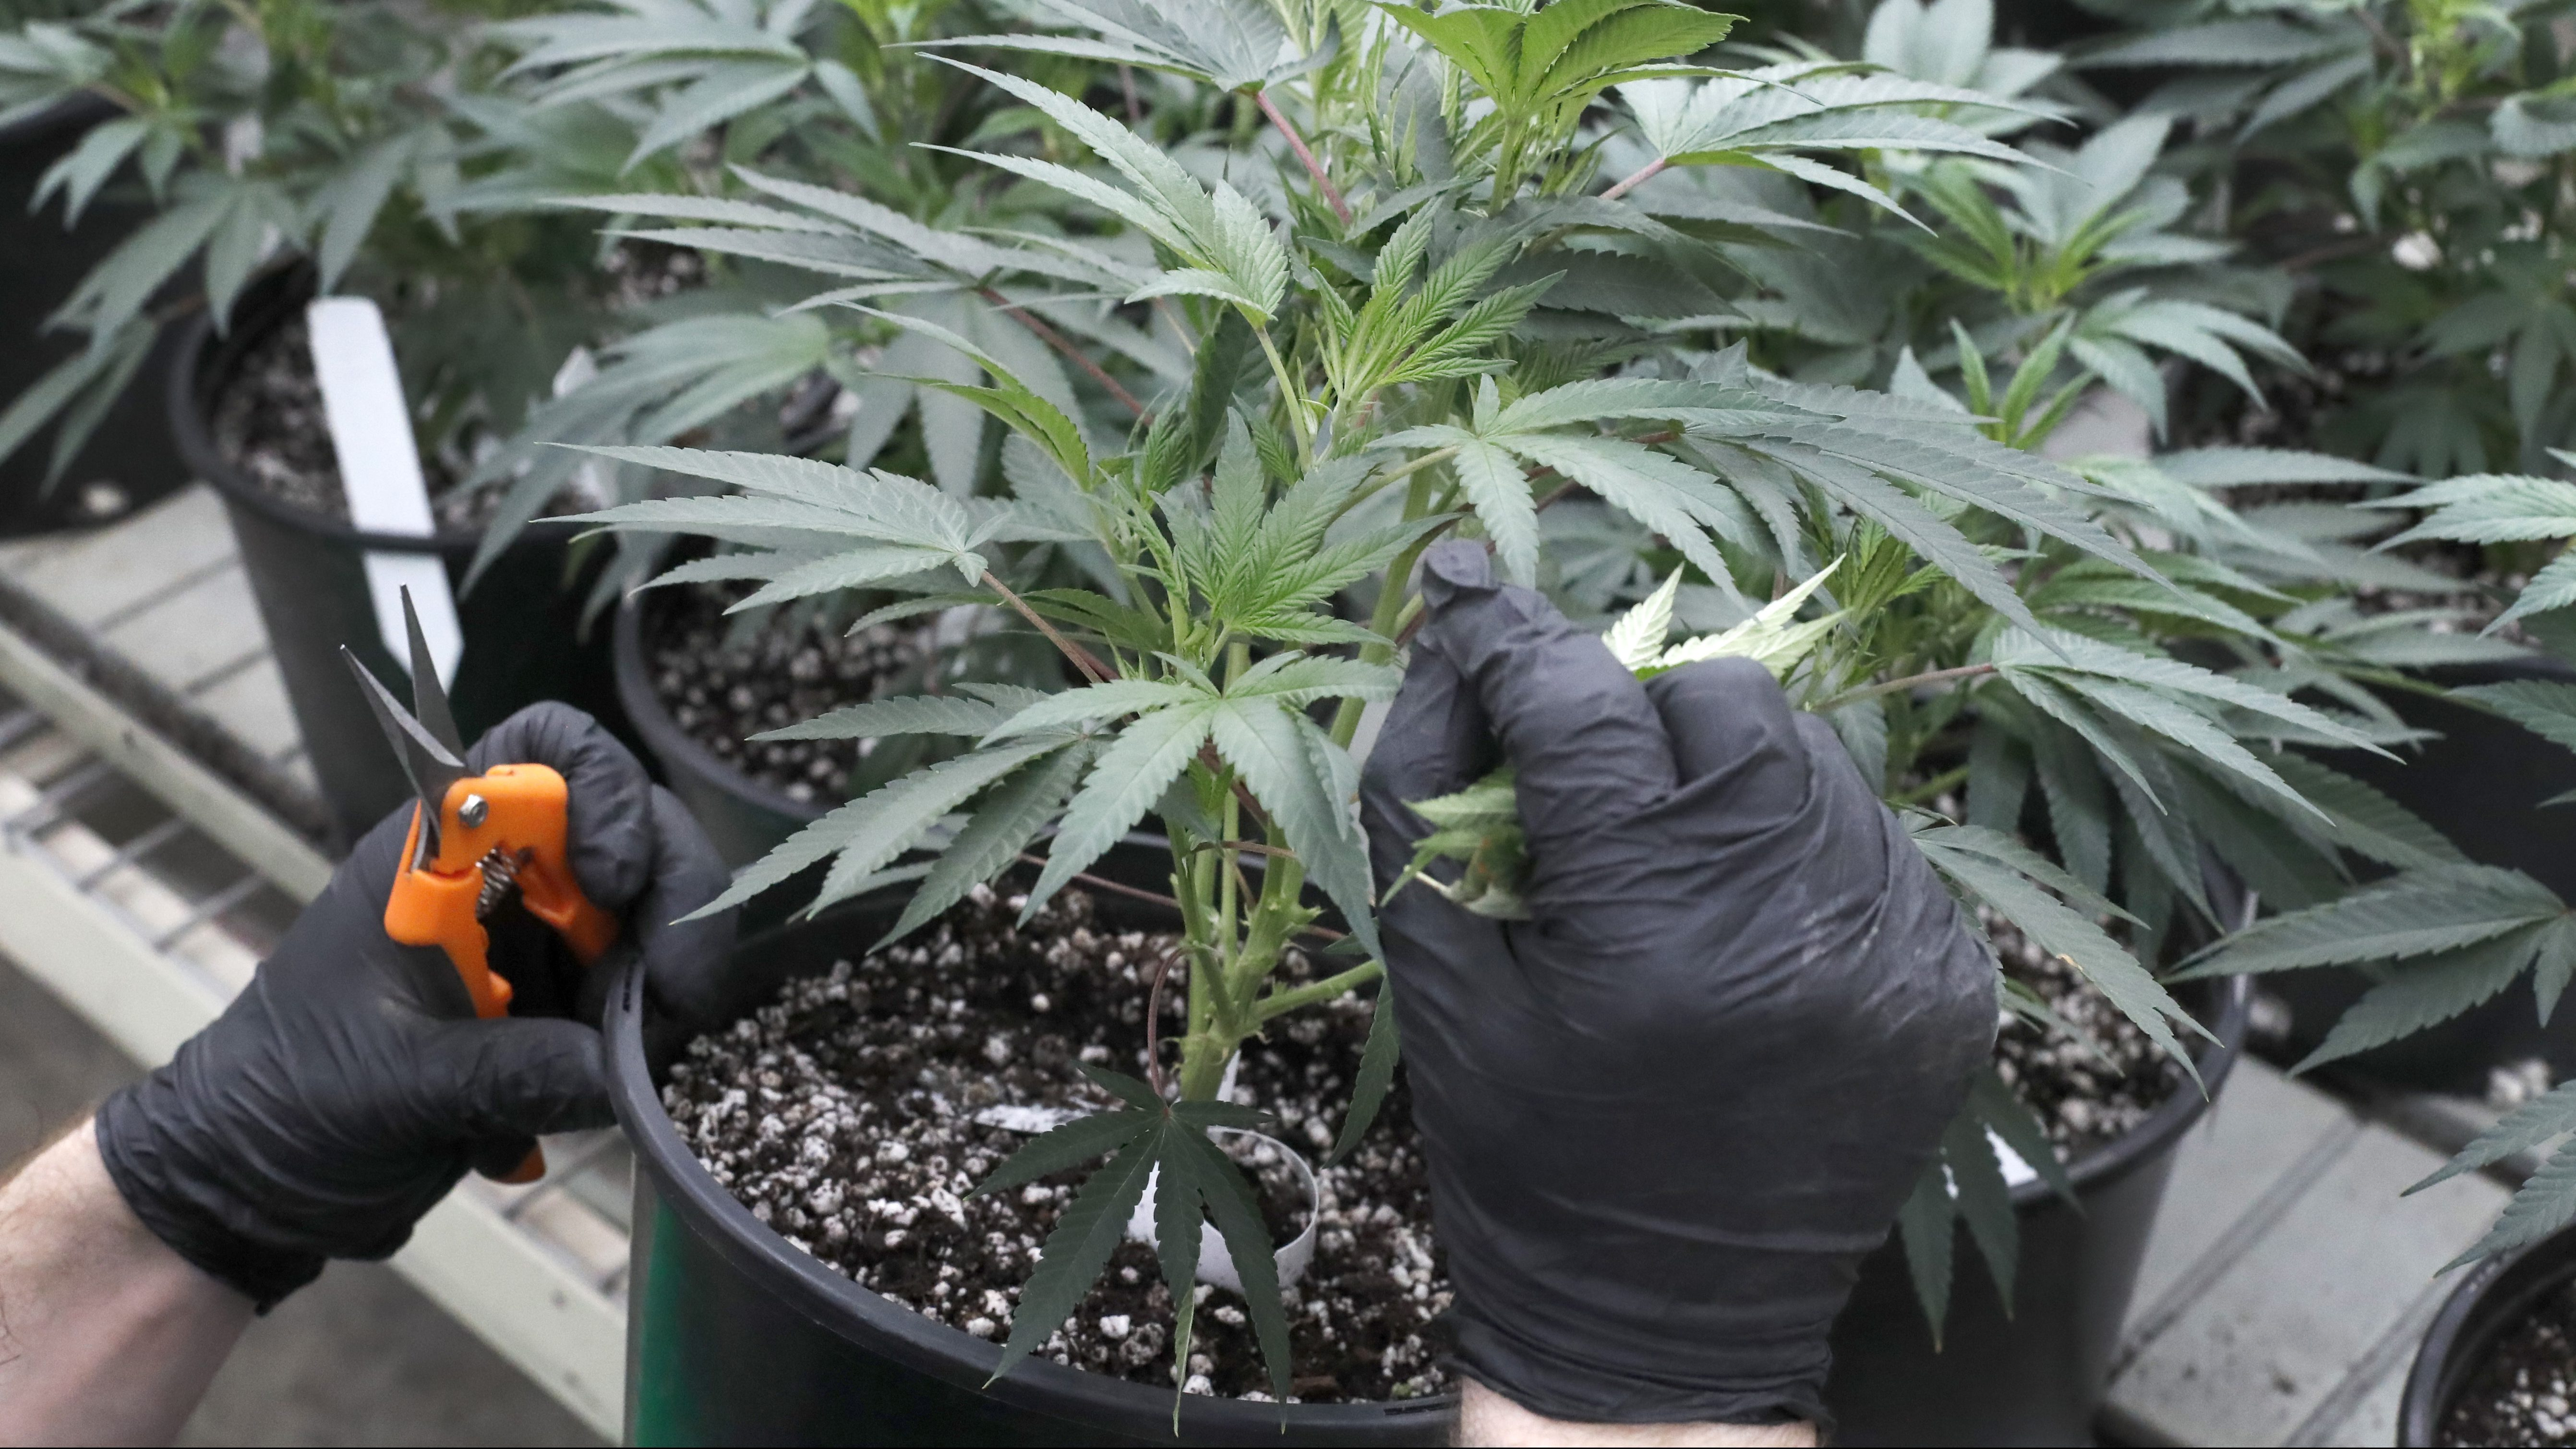 A gardener tends a cannabis plant